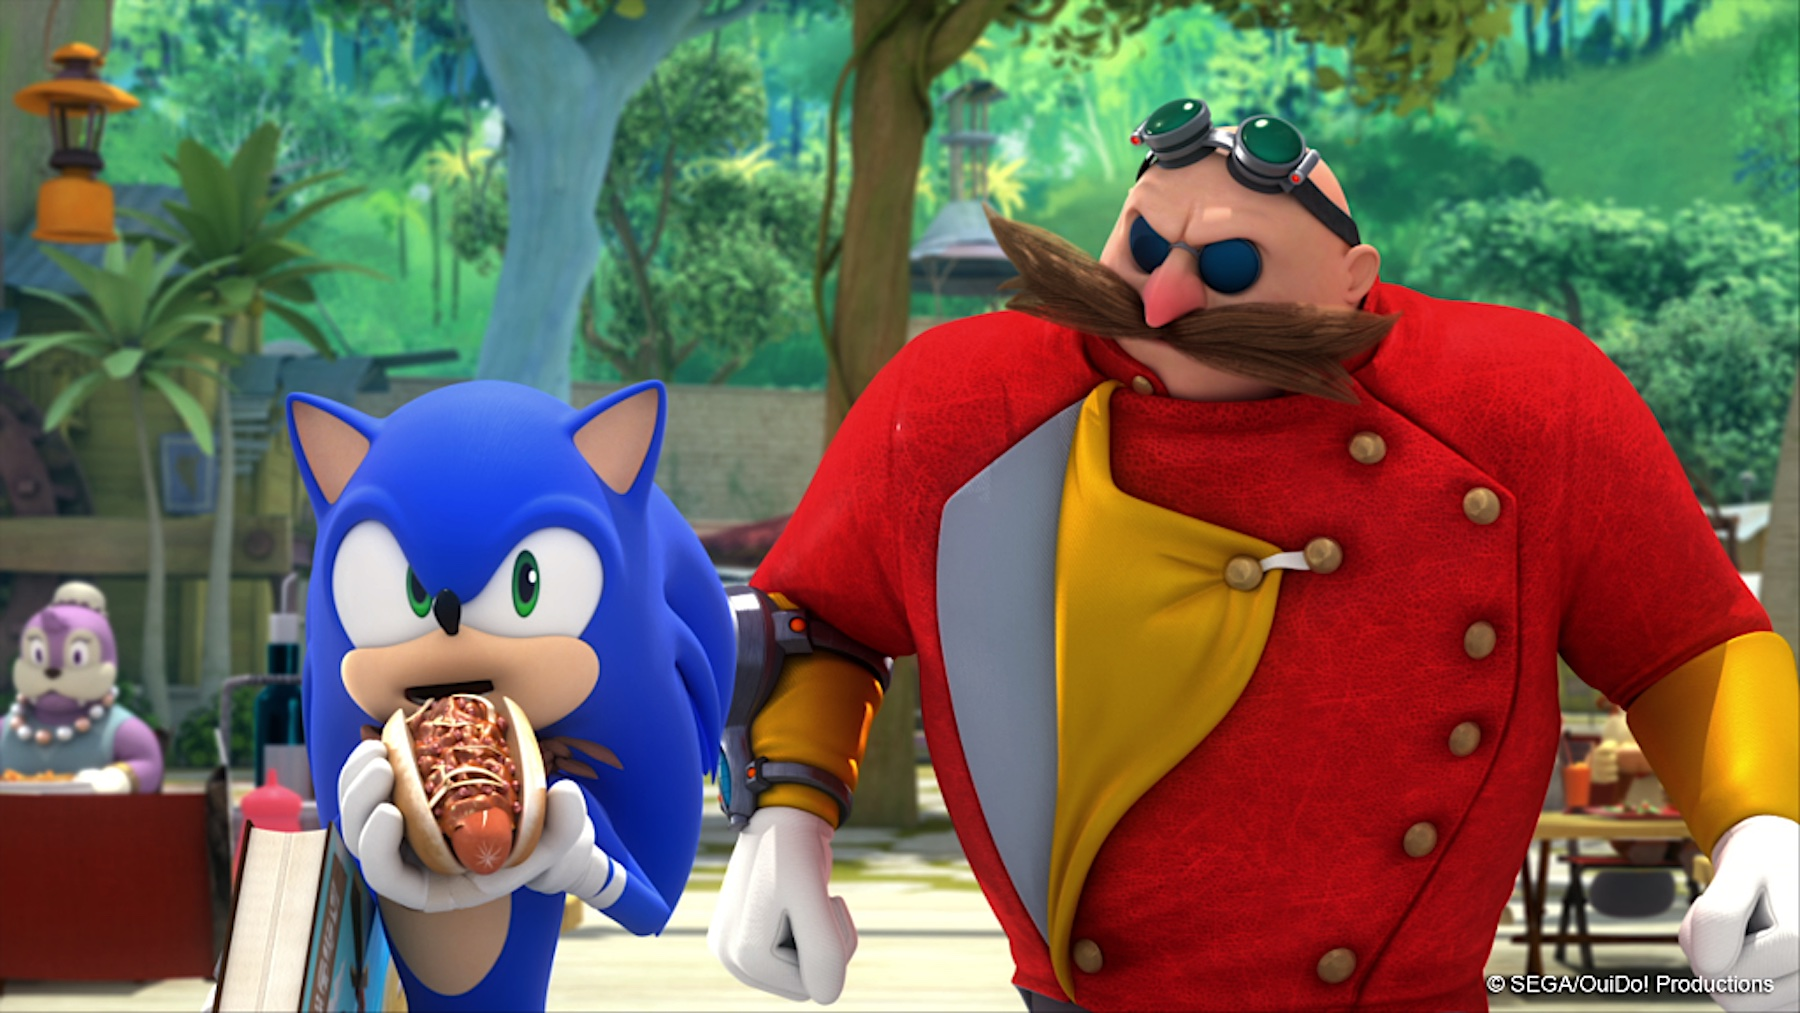 Sonic eats a chili dog next to Dr. Robotnik in a still from Sonic Boom